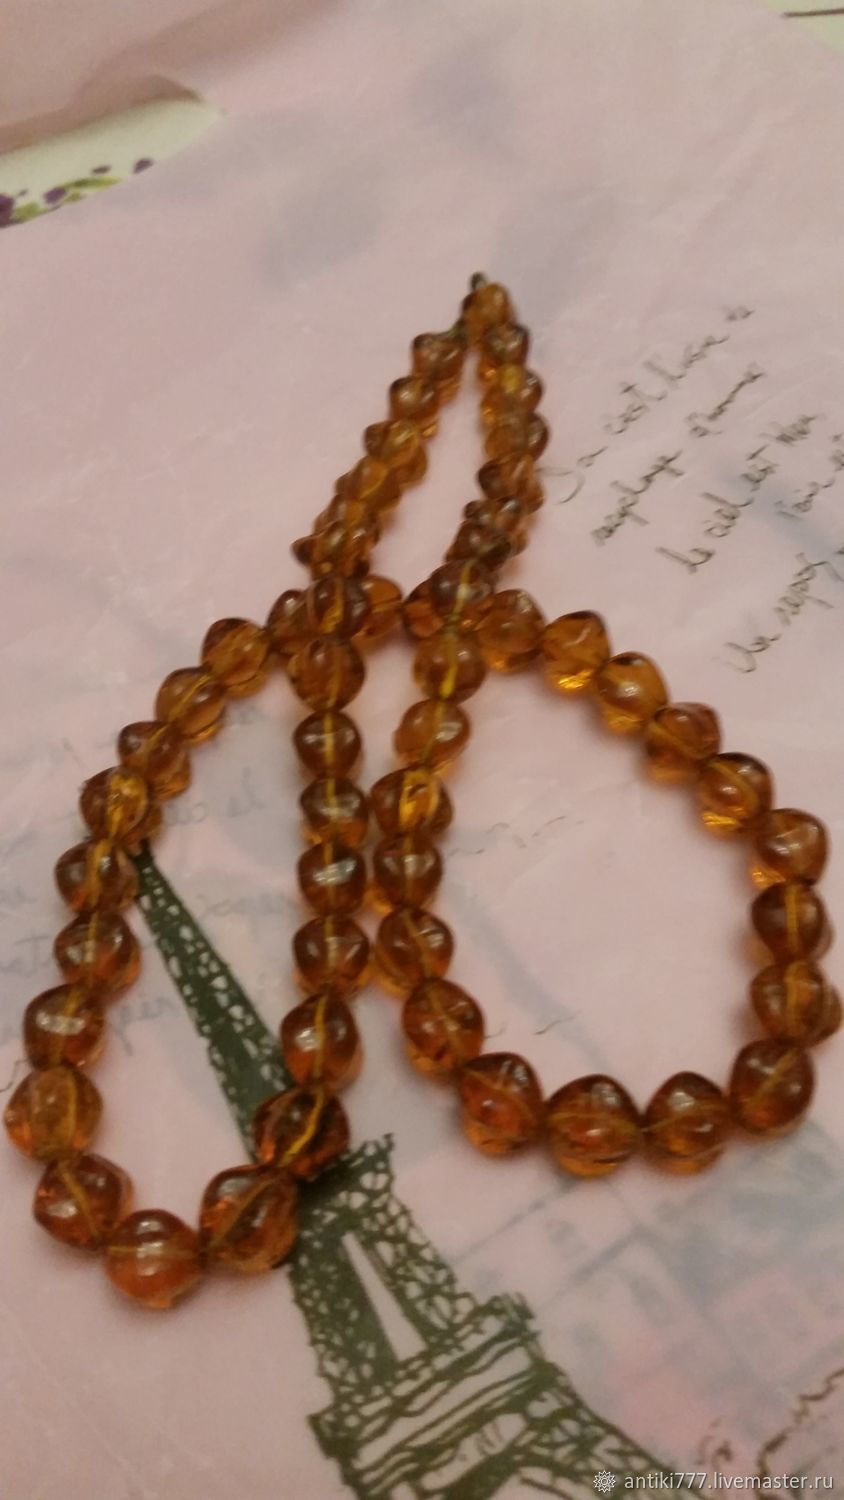 Vintage beads, Vintage necklace, Moscow,  Фото №1